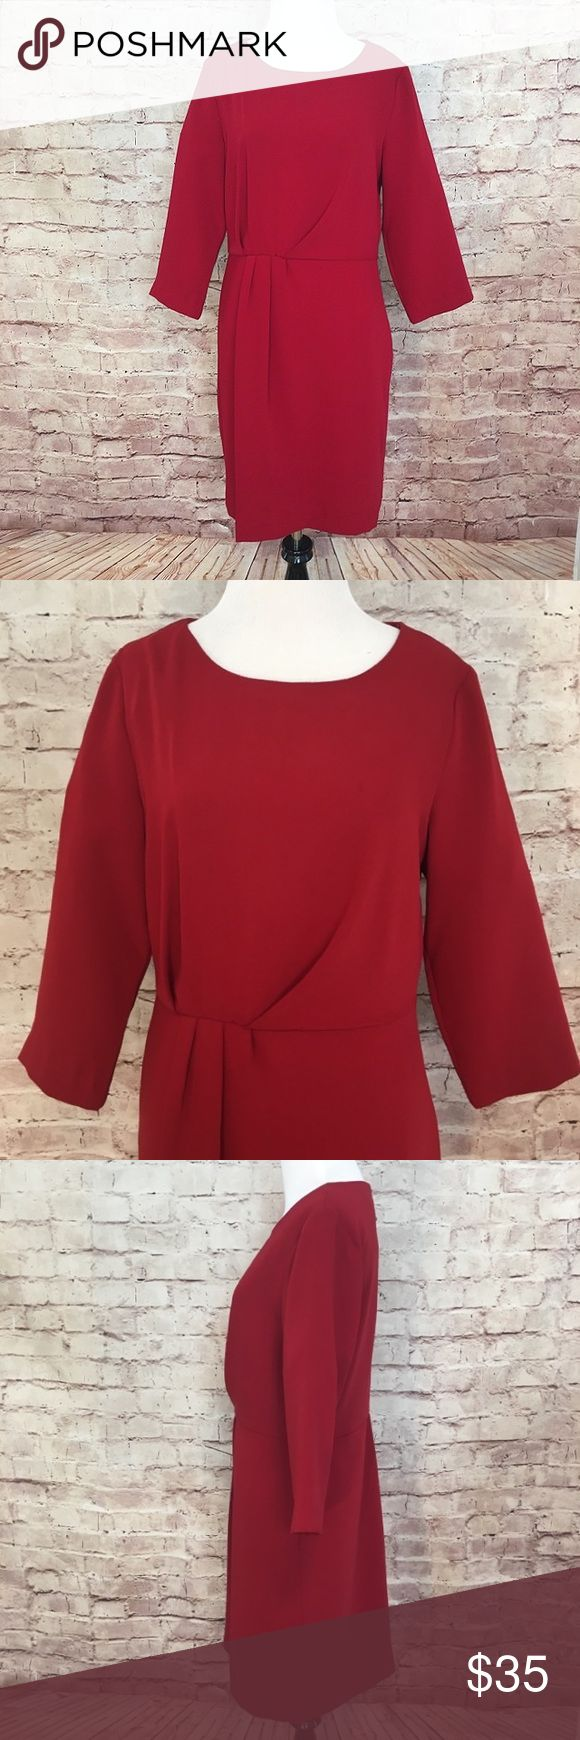 """Massimo Dutti Red Dress Beautiful power red lined power red dress with 3/4 sleeves and side hidden zipper.  There is no fabric tag, but I believe it is a polyester blend. Size 8. Bust 36"""". Length 37"""". Like new condition. No flaws or signs of wear. Massimo Dutti Dresses"""